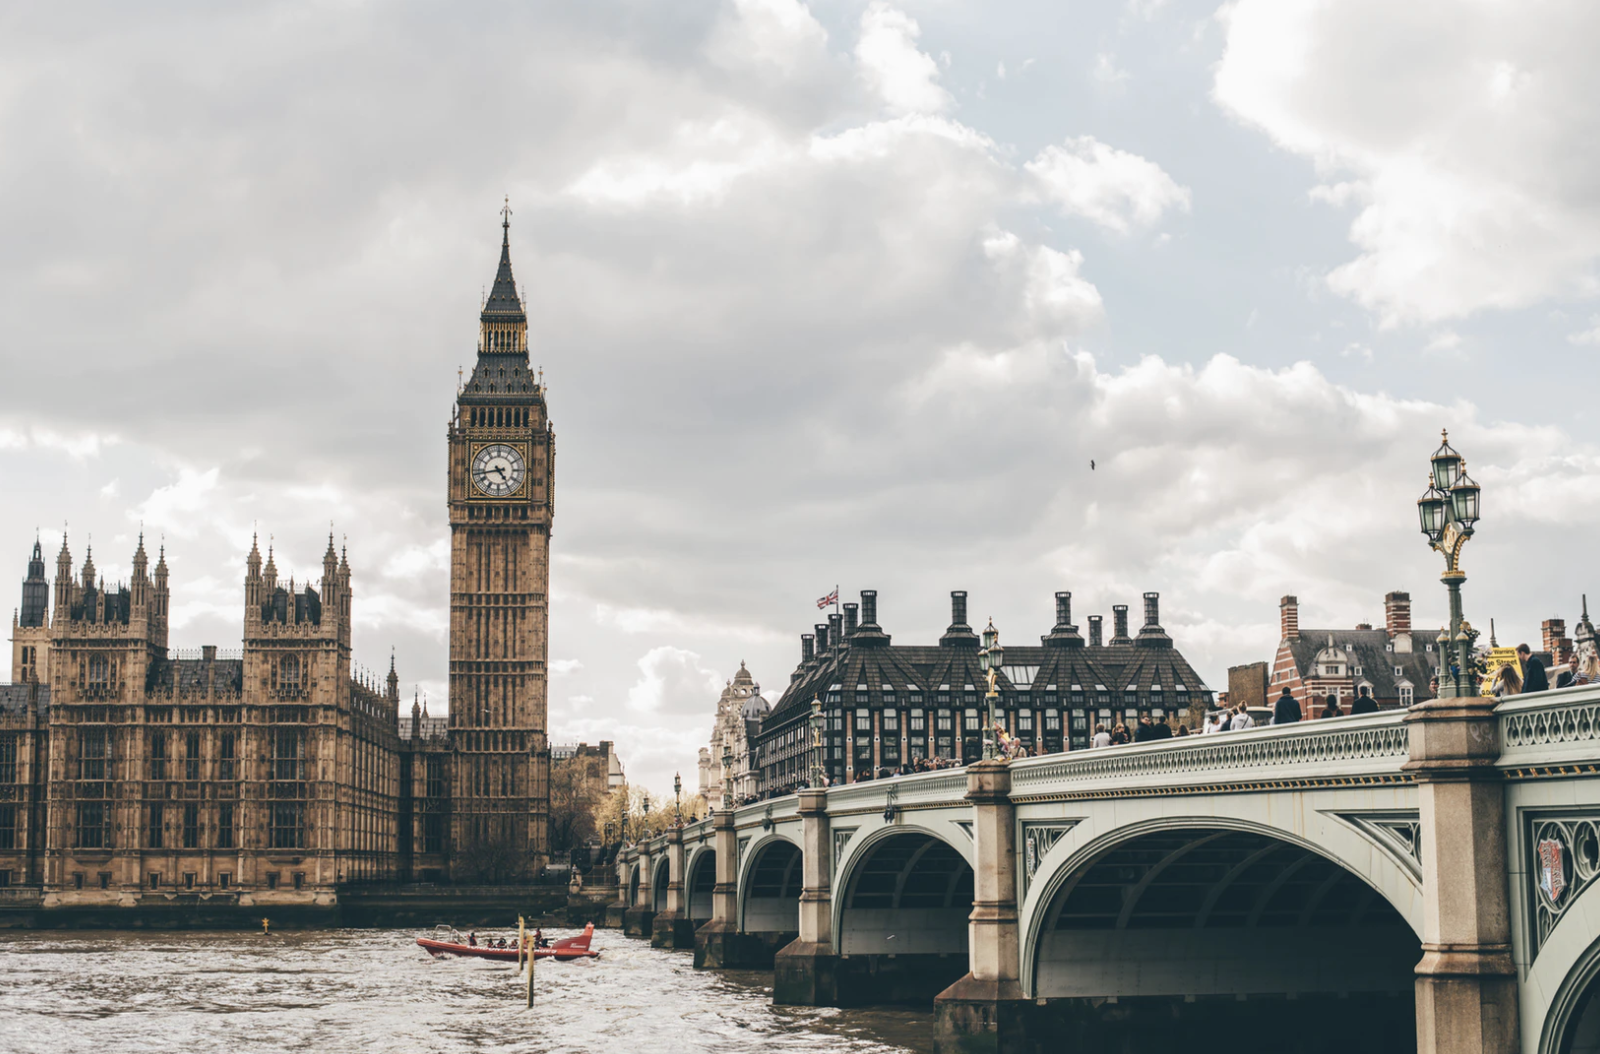 EU-Singapore Free Trade Agreement (EUSFTA) will apply to the United Kingdom (UK) till December 31. Photo courtesy: Unsplash